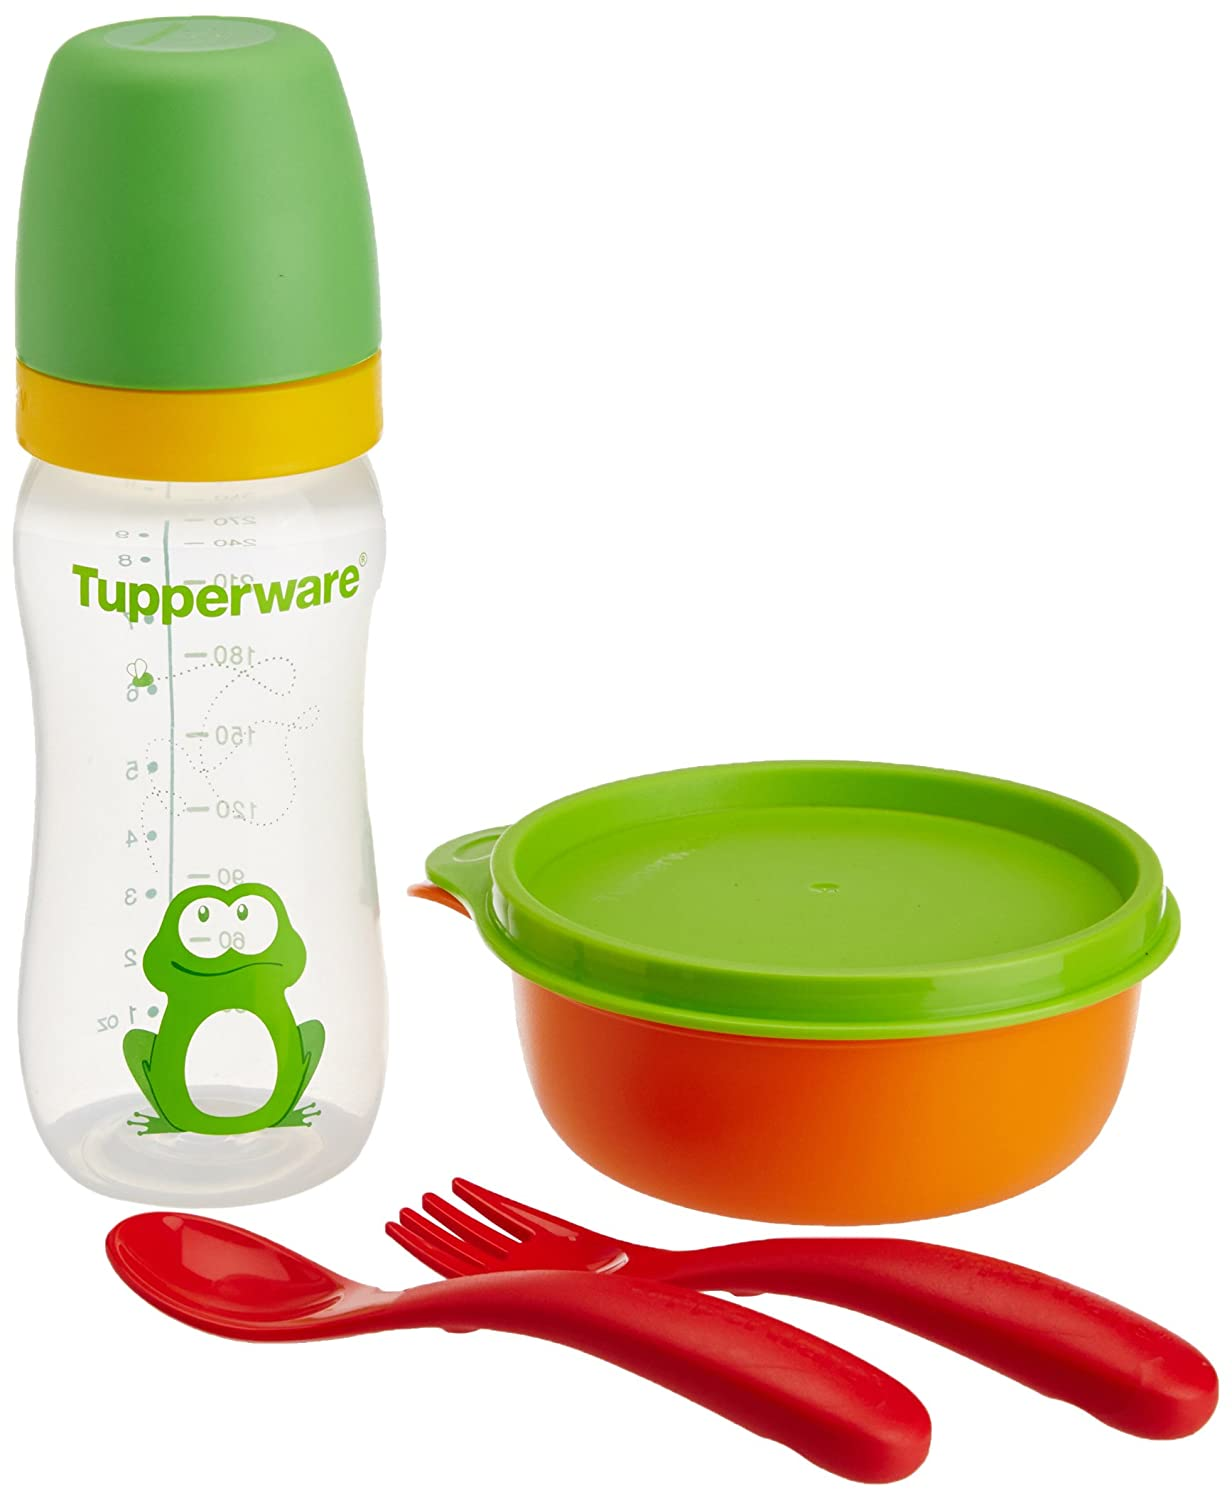 Tupperware twinkle baby on the move set 3 pieces 233 amazon in home kitchen